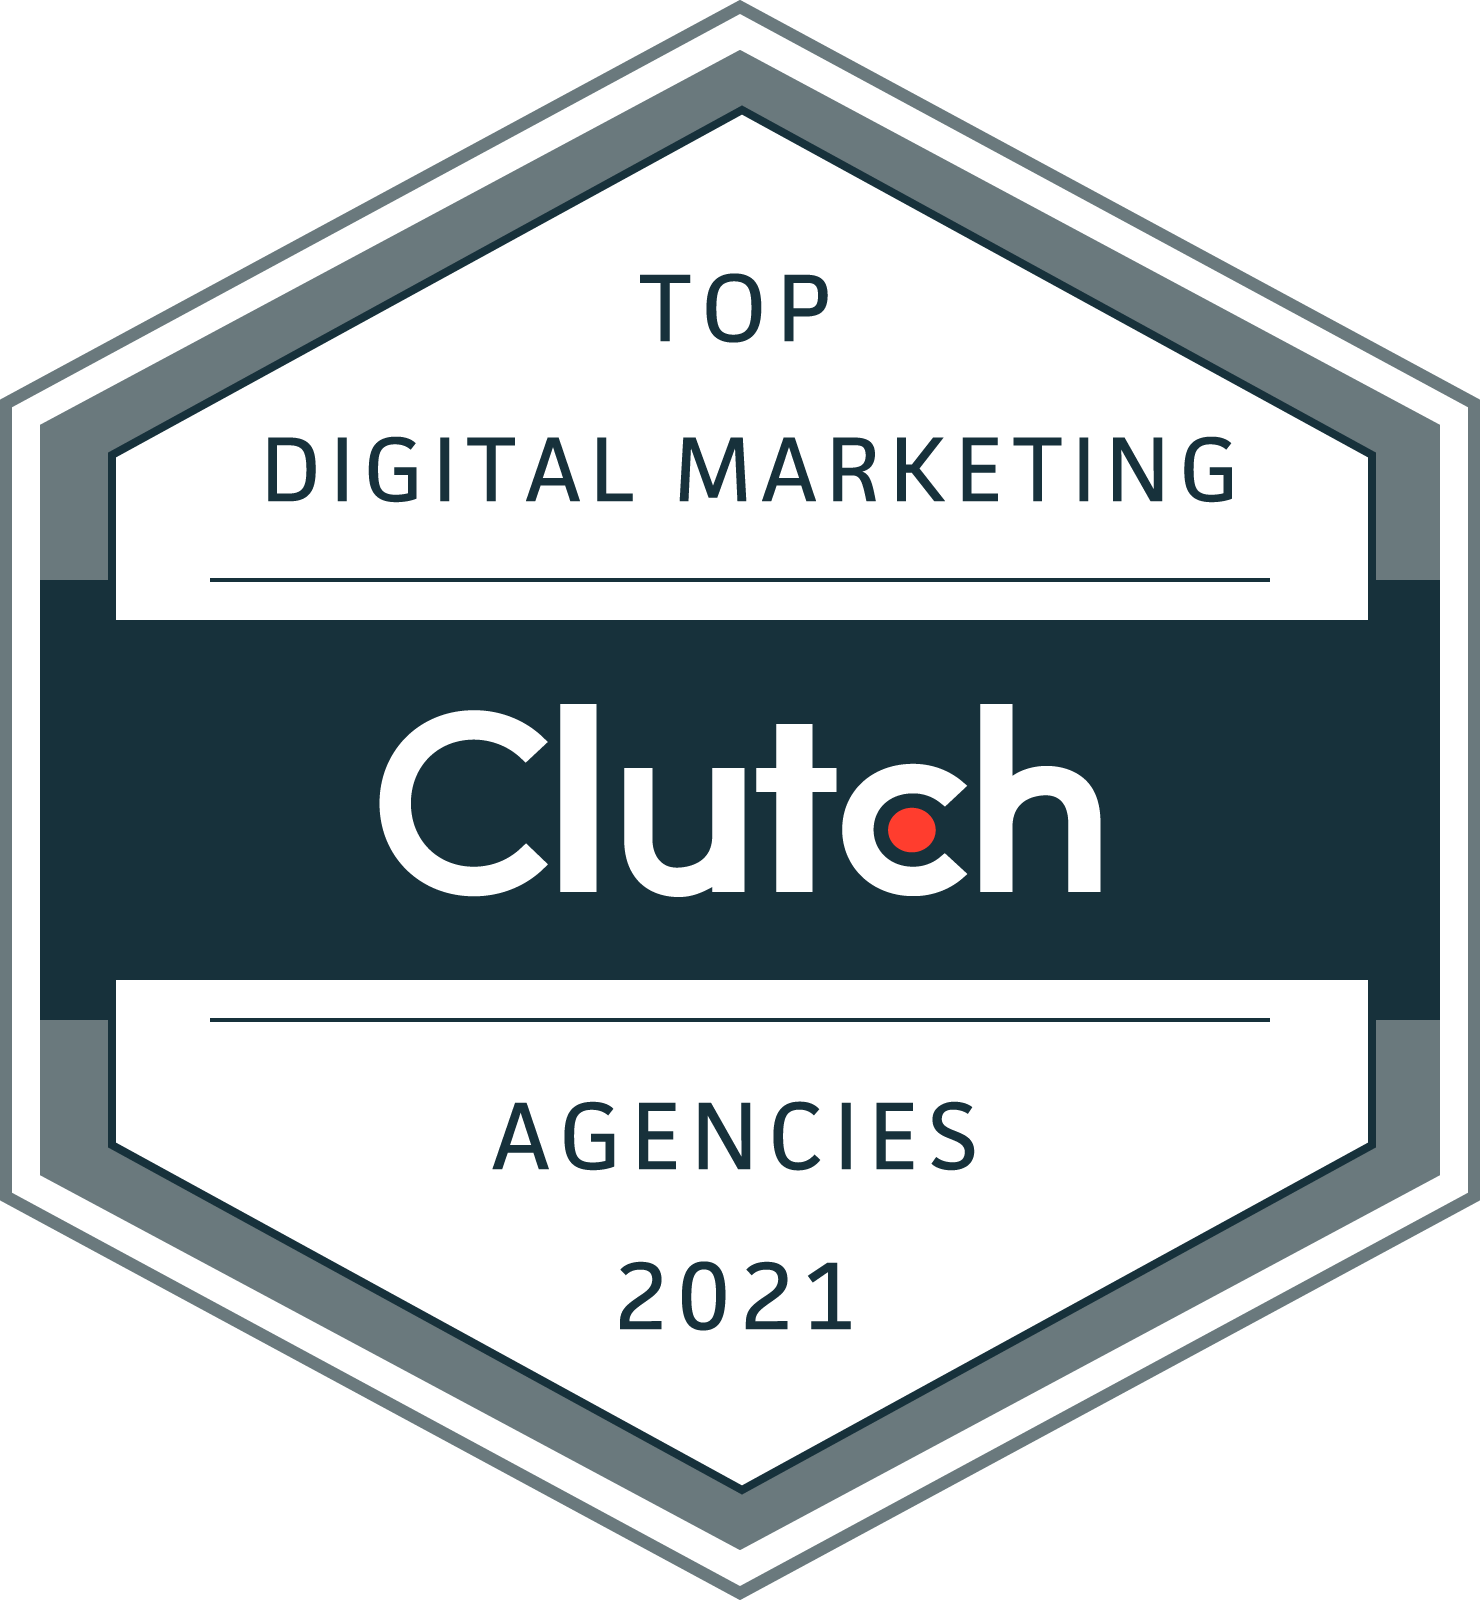 Top Digital Marketing Agencies 2021 by Clutch